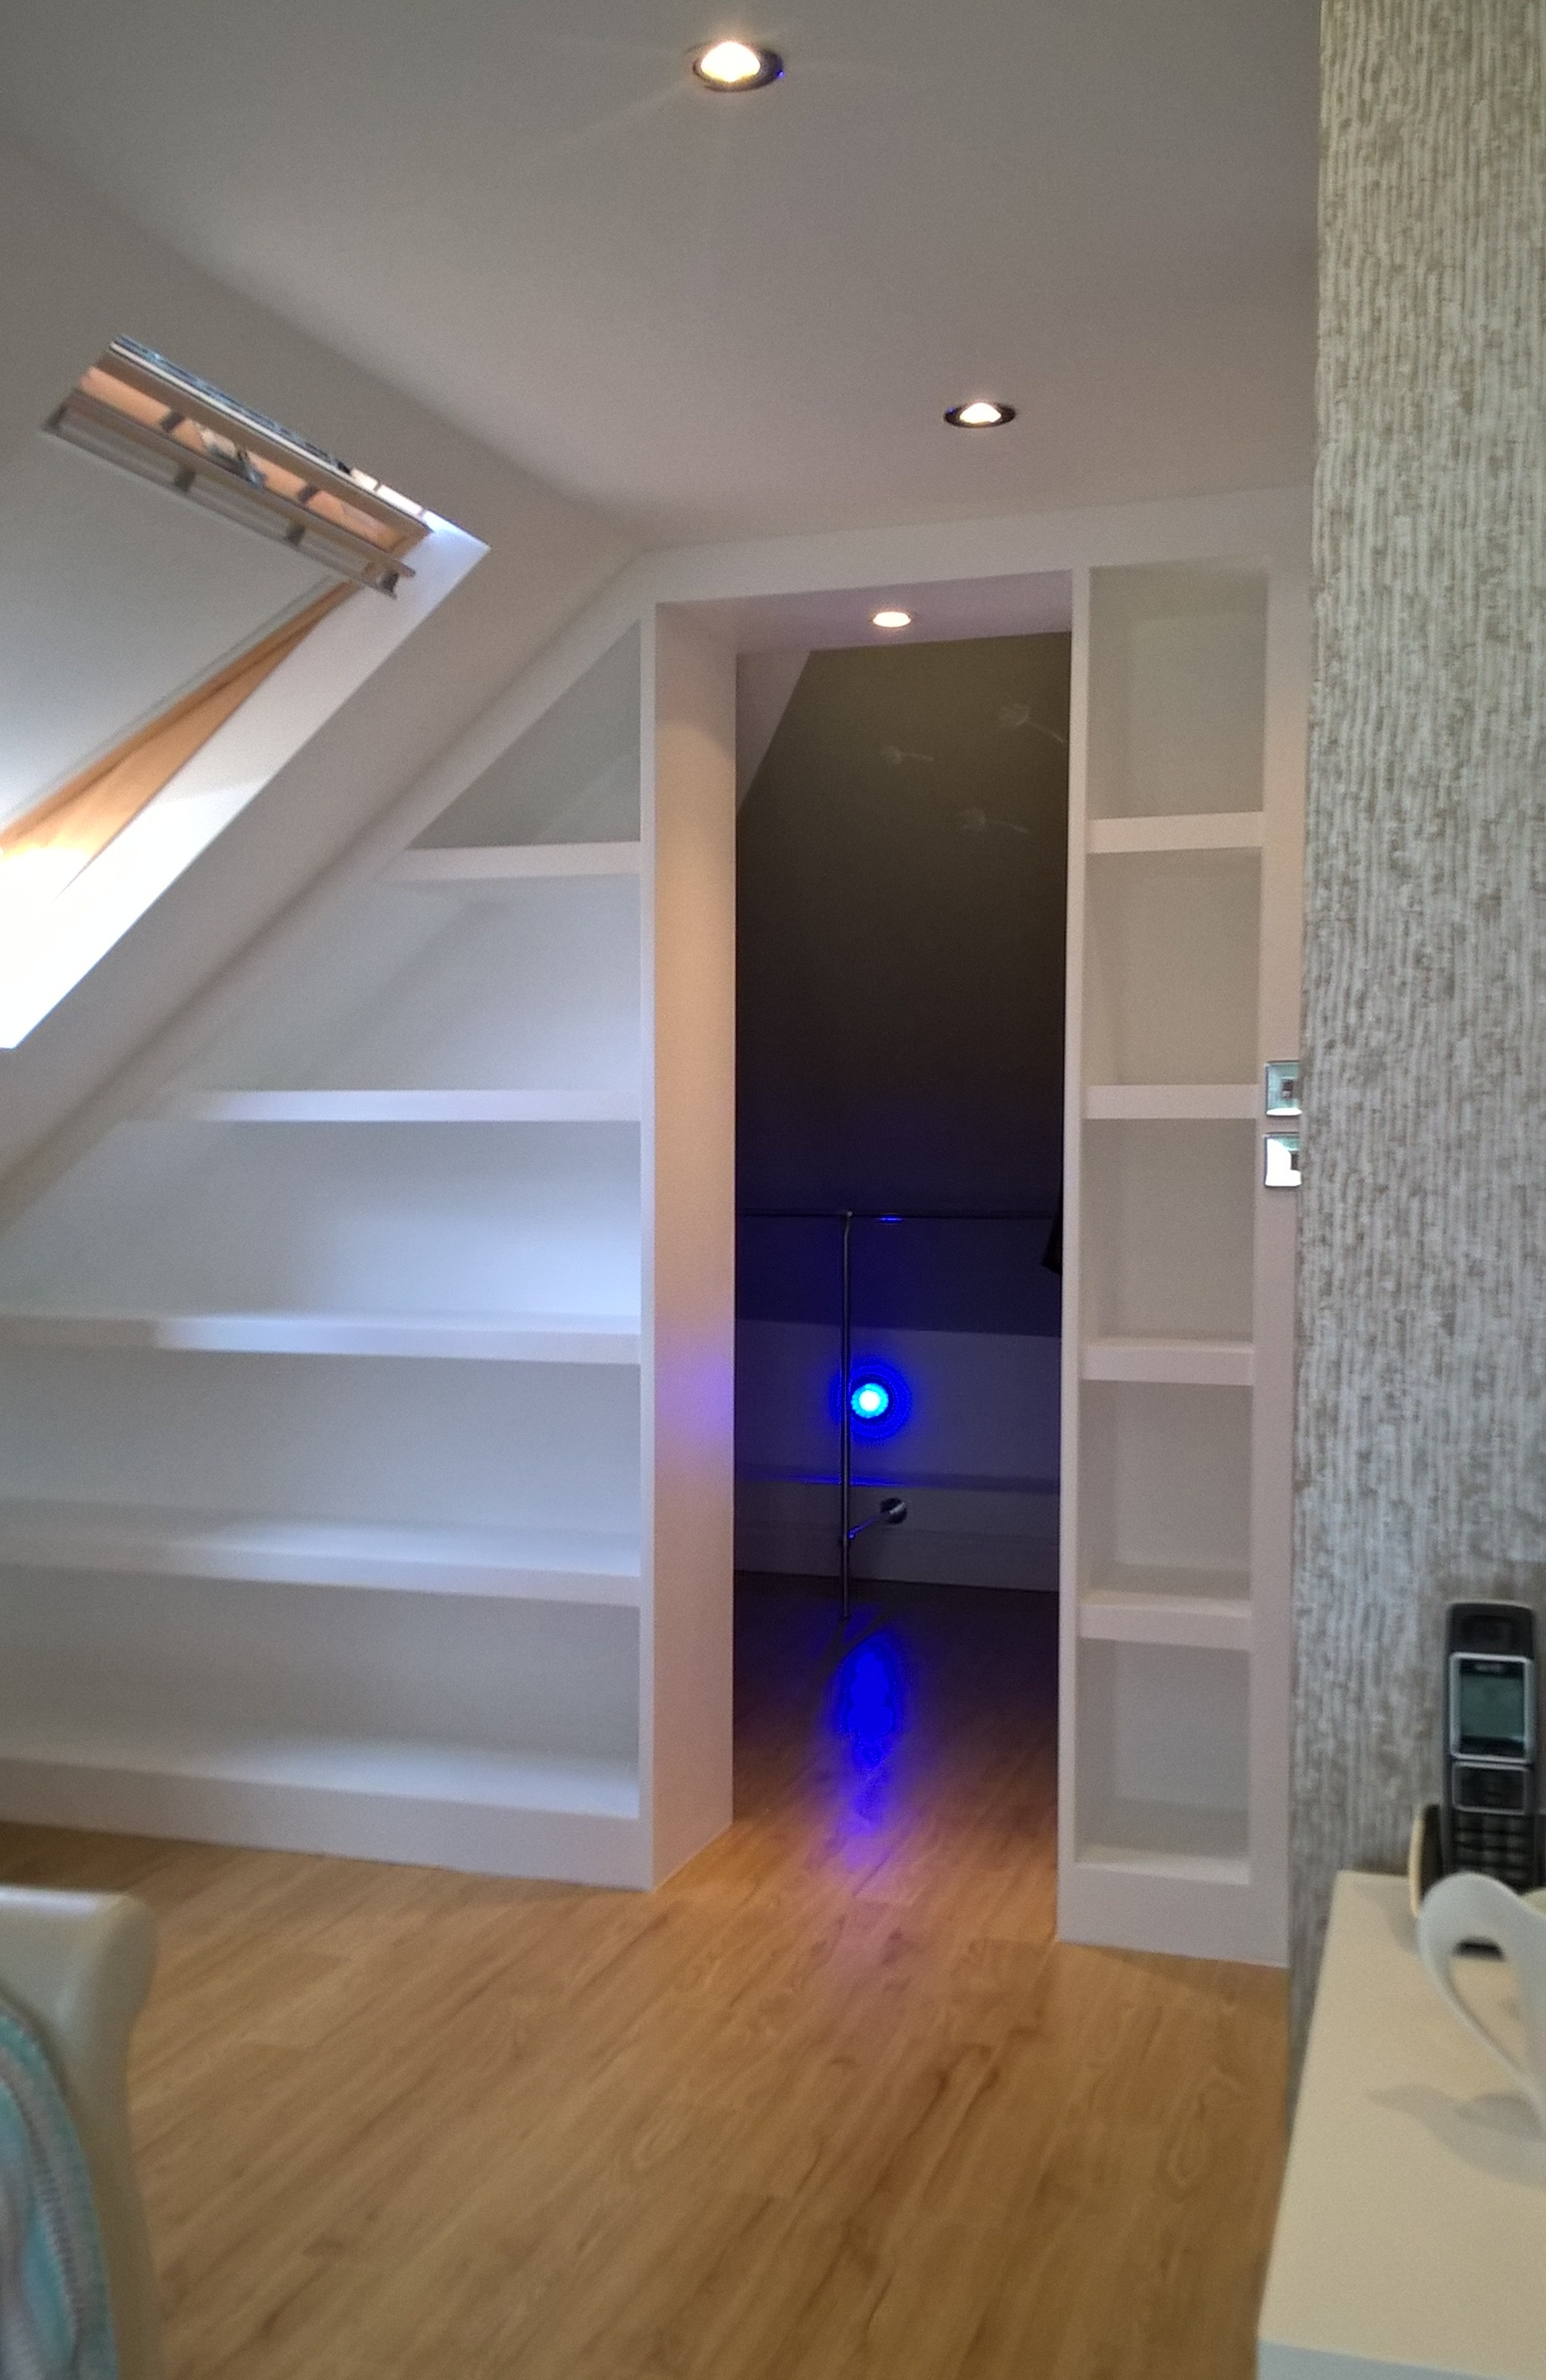 Room divide with storage (7)